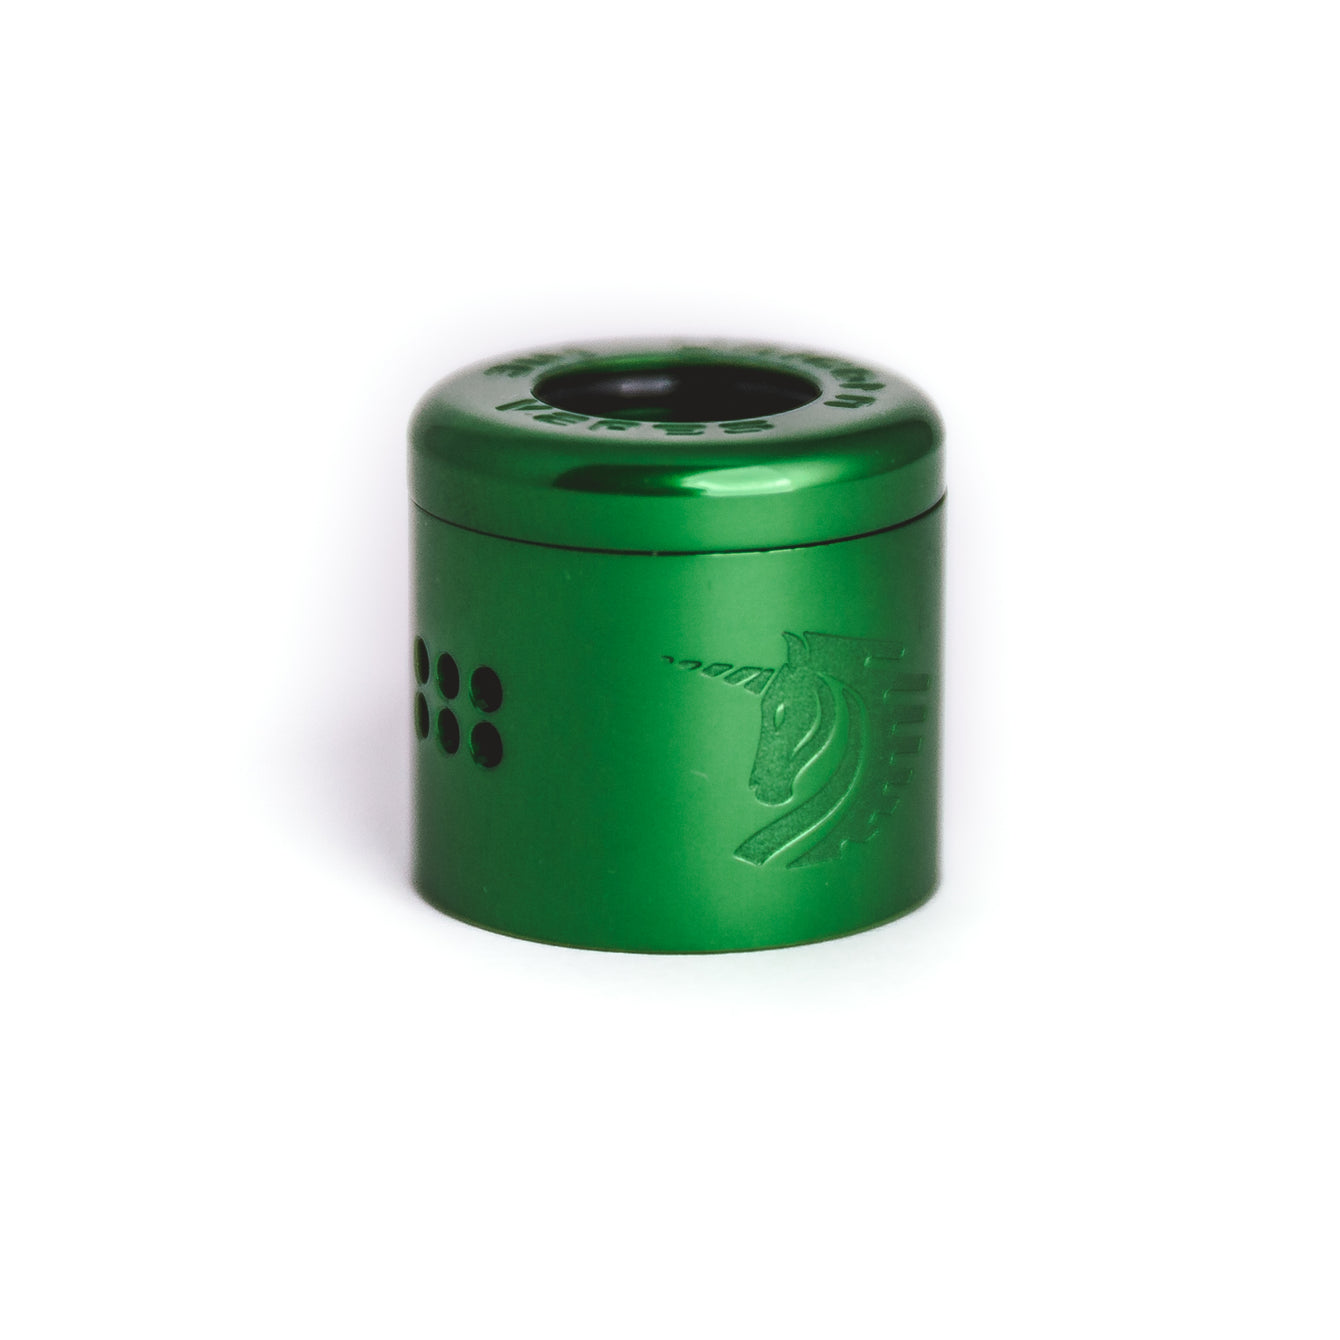 24mm Green Cap - Unicorn RDA